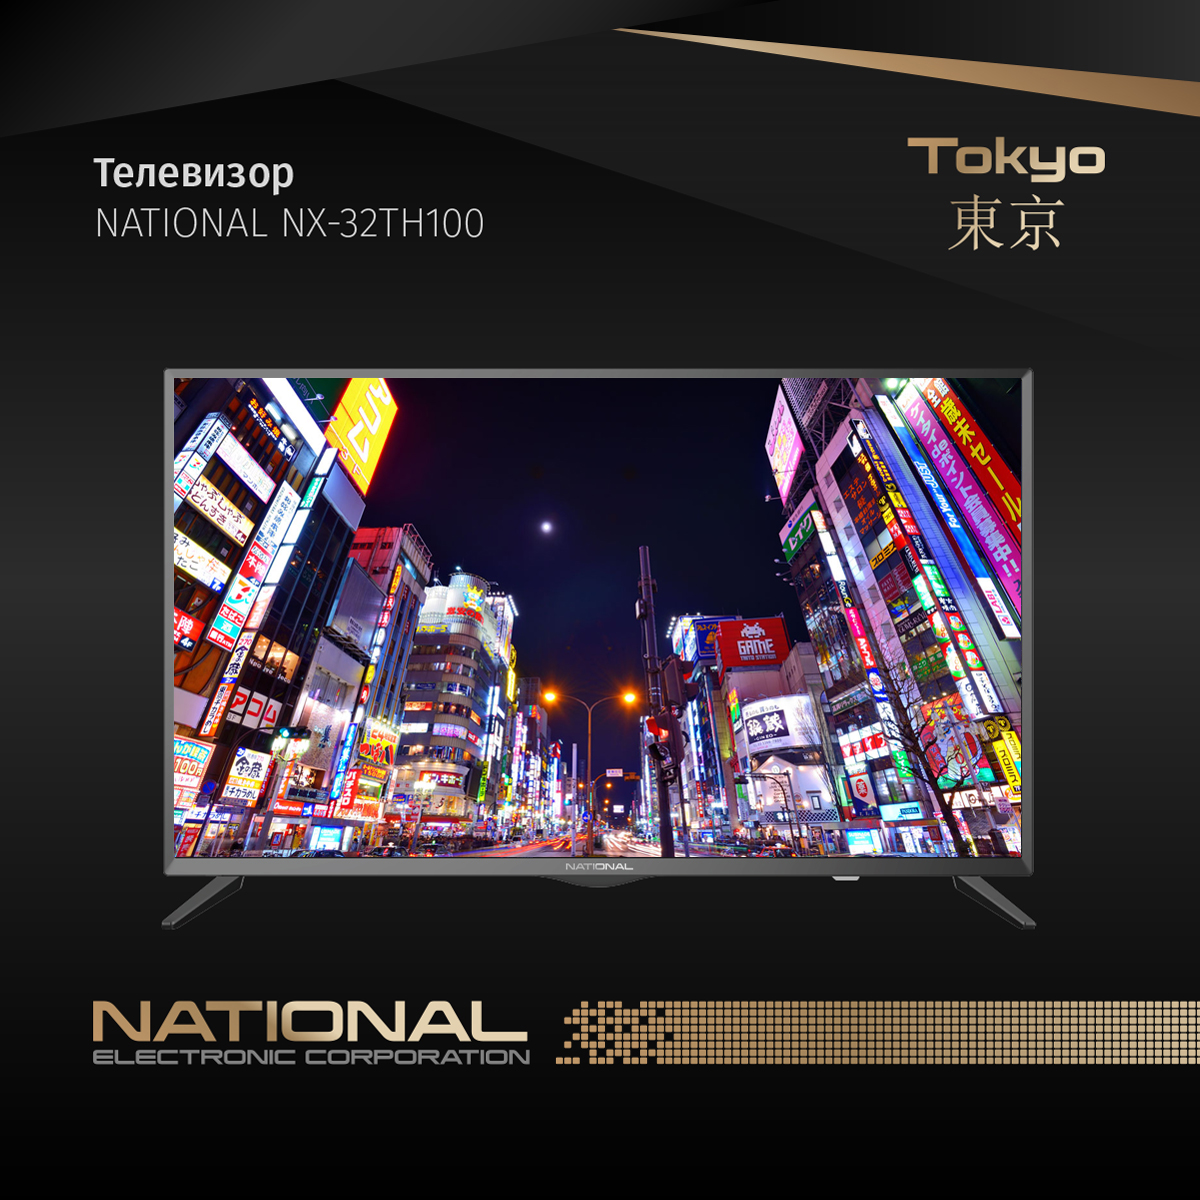 Телевизор NATIONAL NX-32TH100